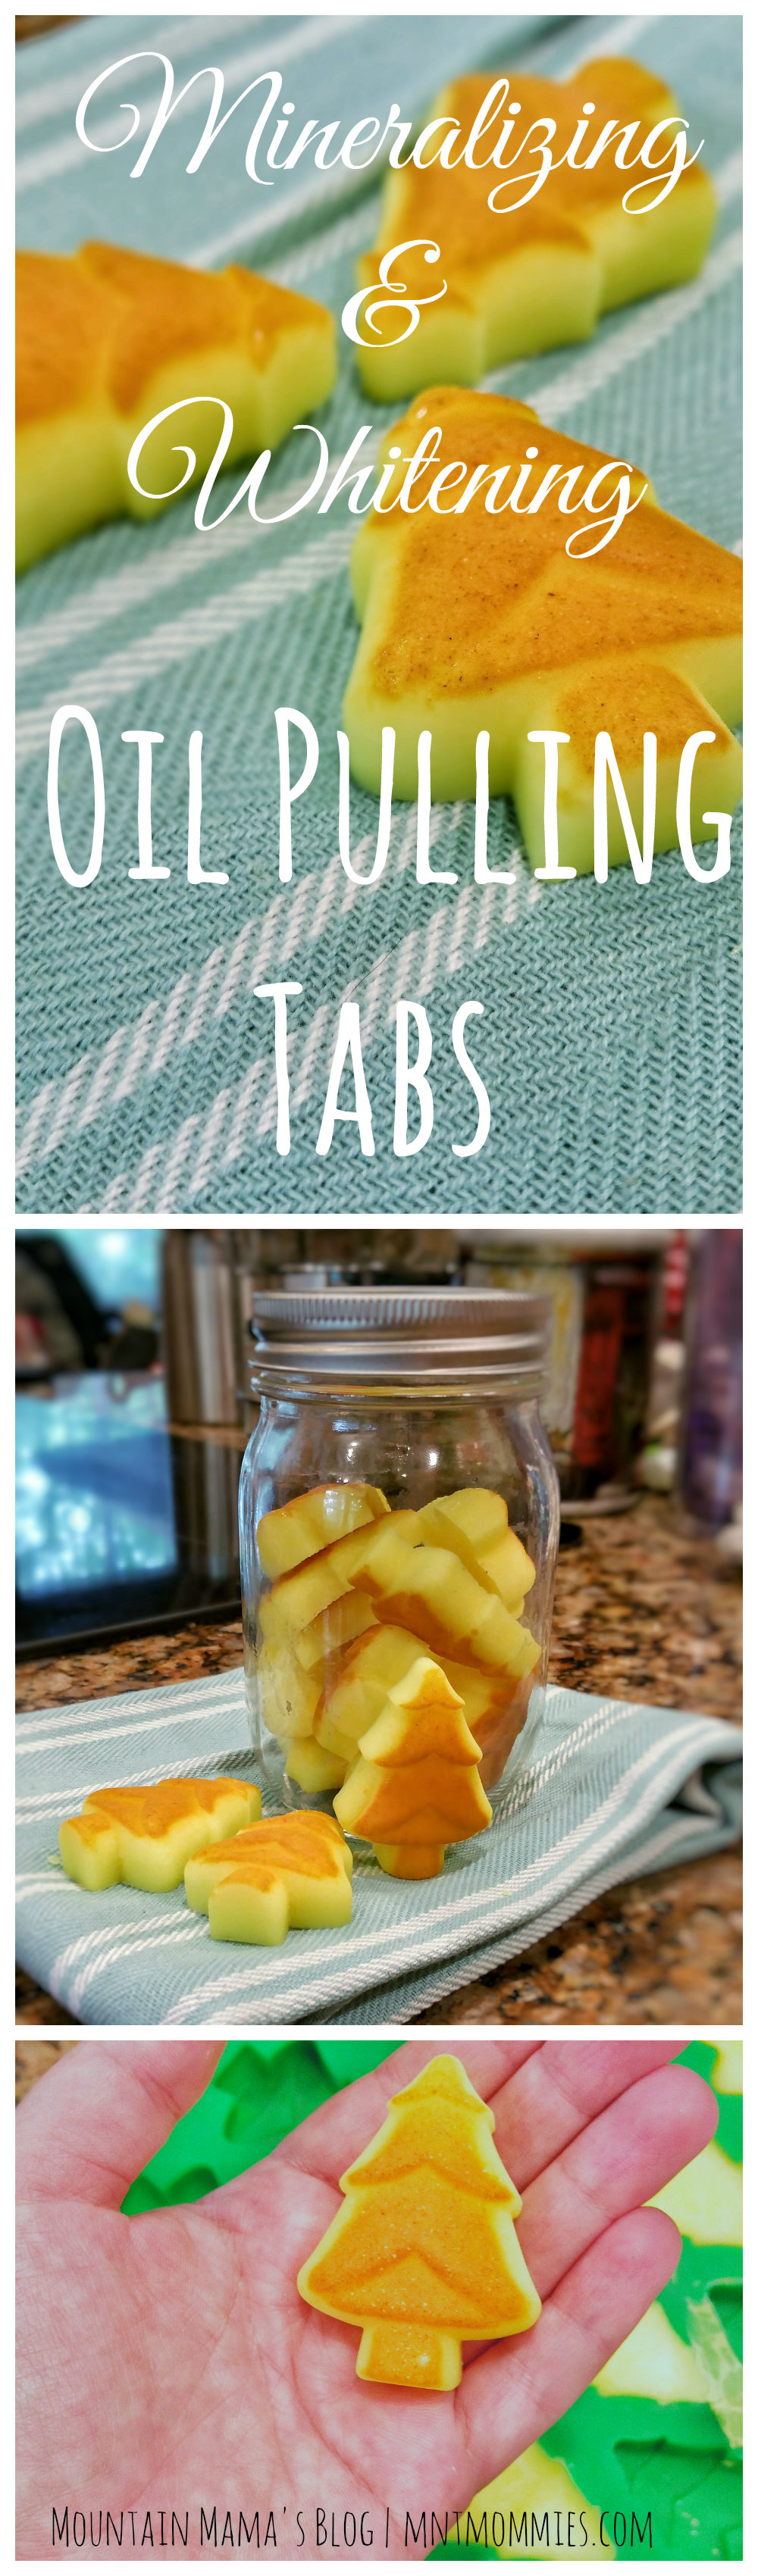 DIY Mineralizing & Whitening Oil Pulling Tabs | Mountain Mama's Blog | mntmommies.com